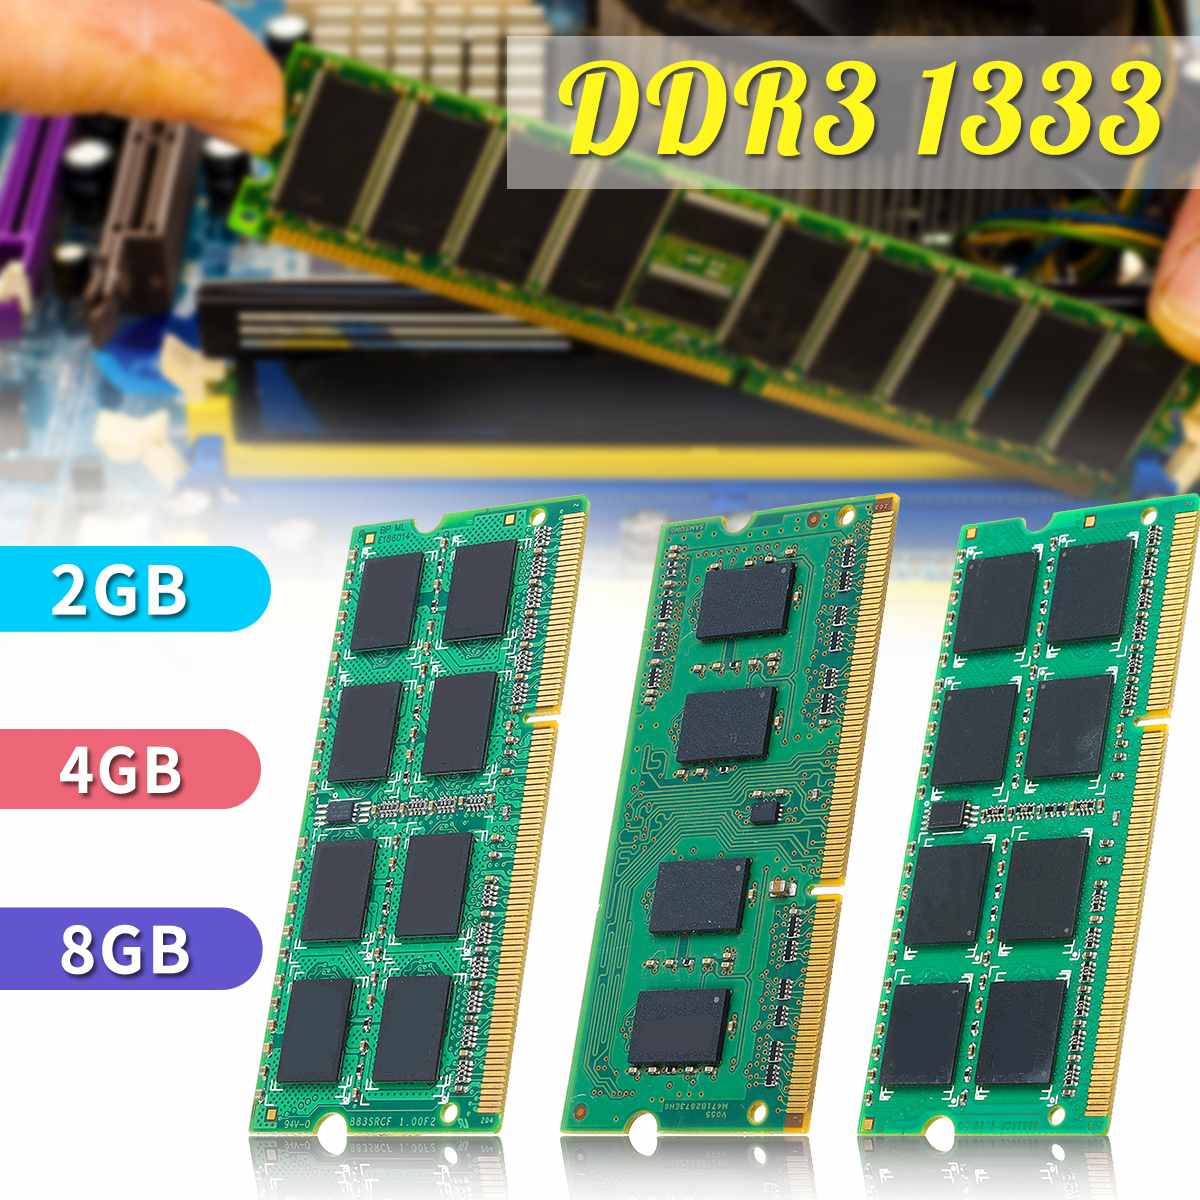 8GB 4GB 2GB Laptop Notebook Memory For Ram DDR3 1333mhz PC3 10600S 204 PIN SO DIMM LOT